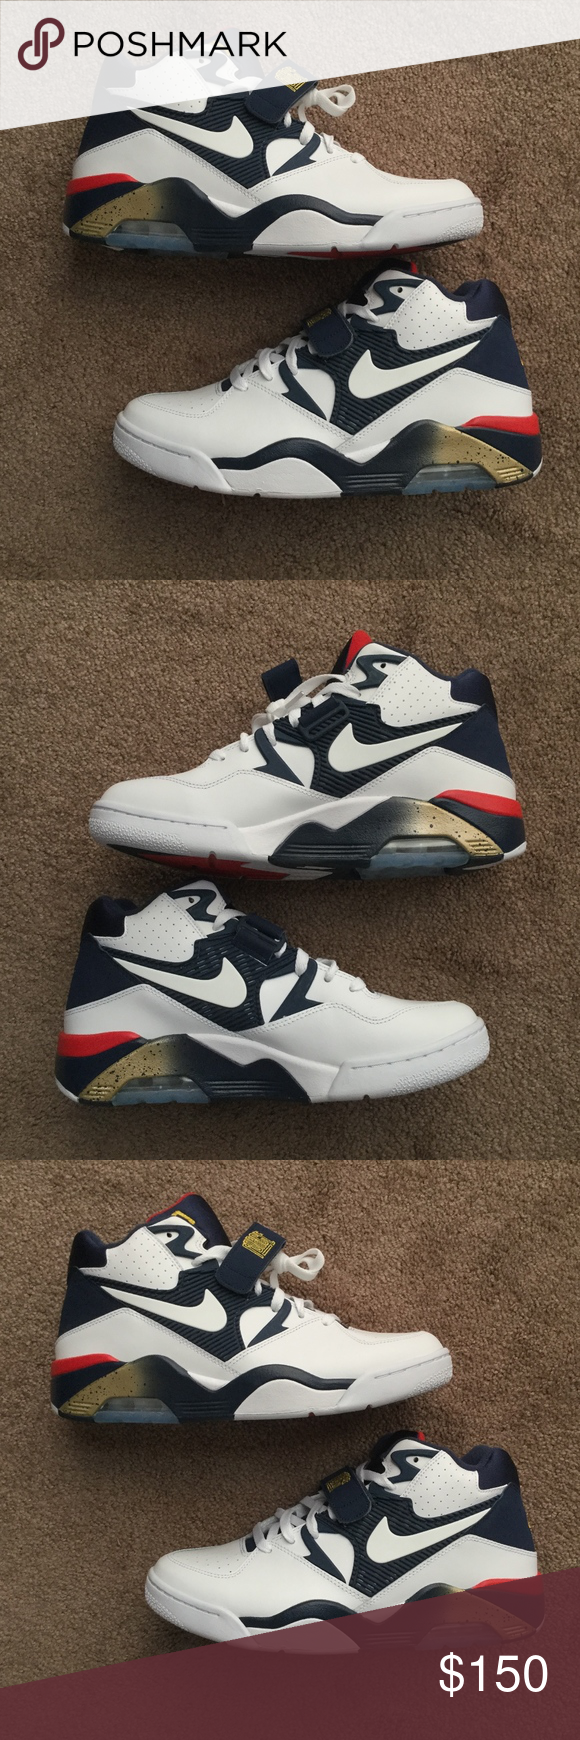 timeless design be325 59977 2016 Nike Air Force 180